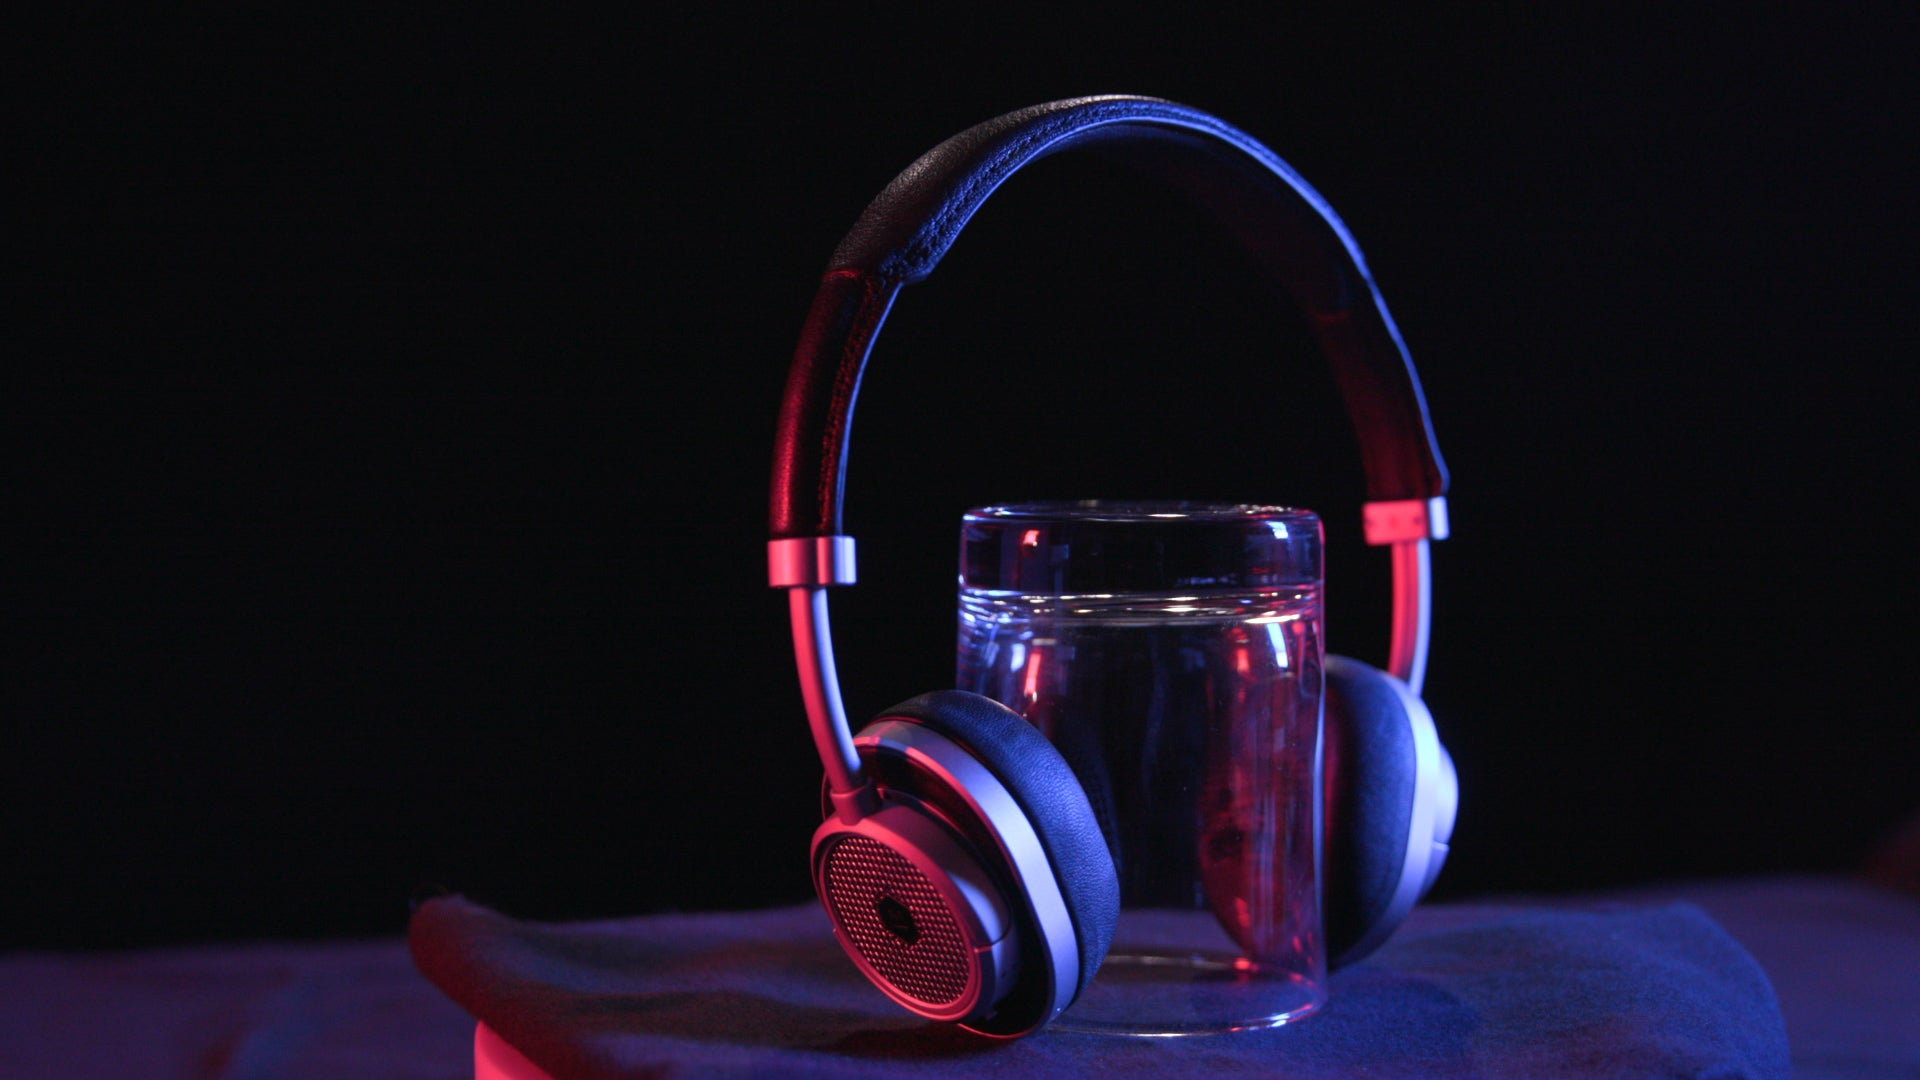 Three Great Wireless Headphones That Are Better Than Beats